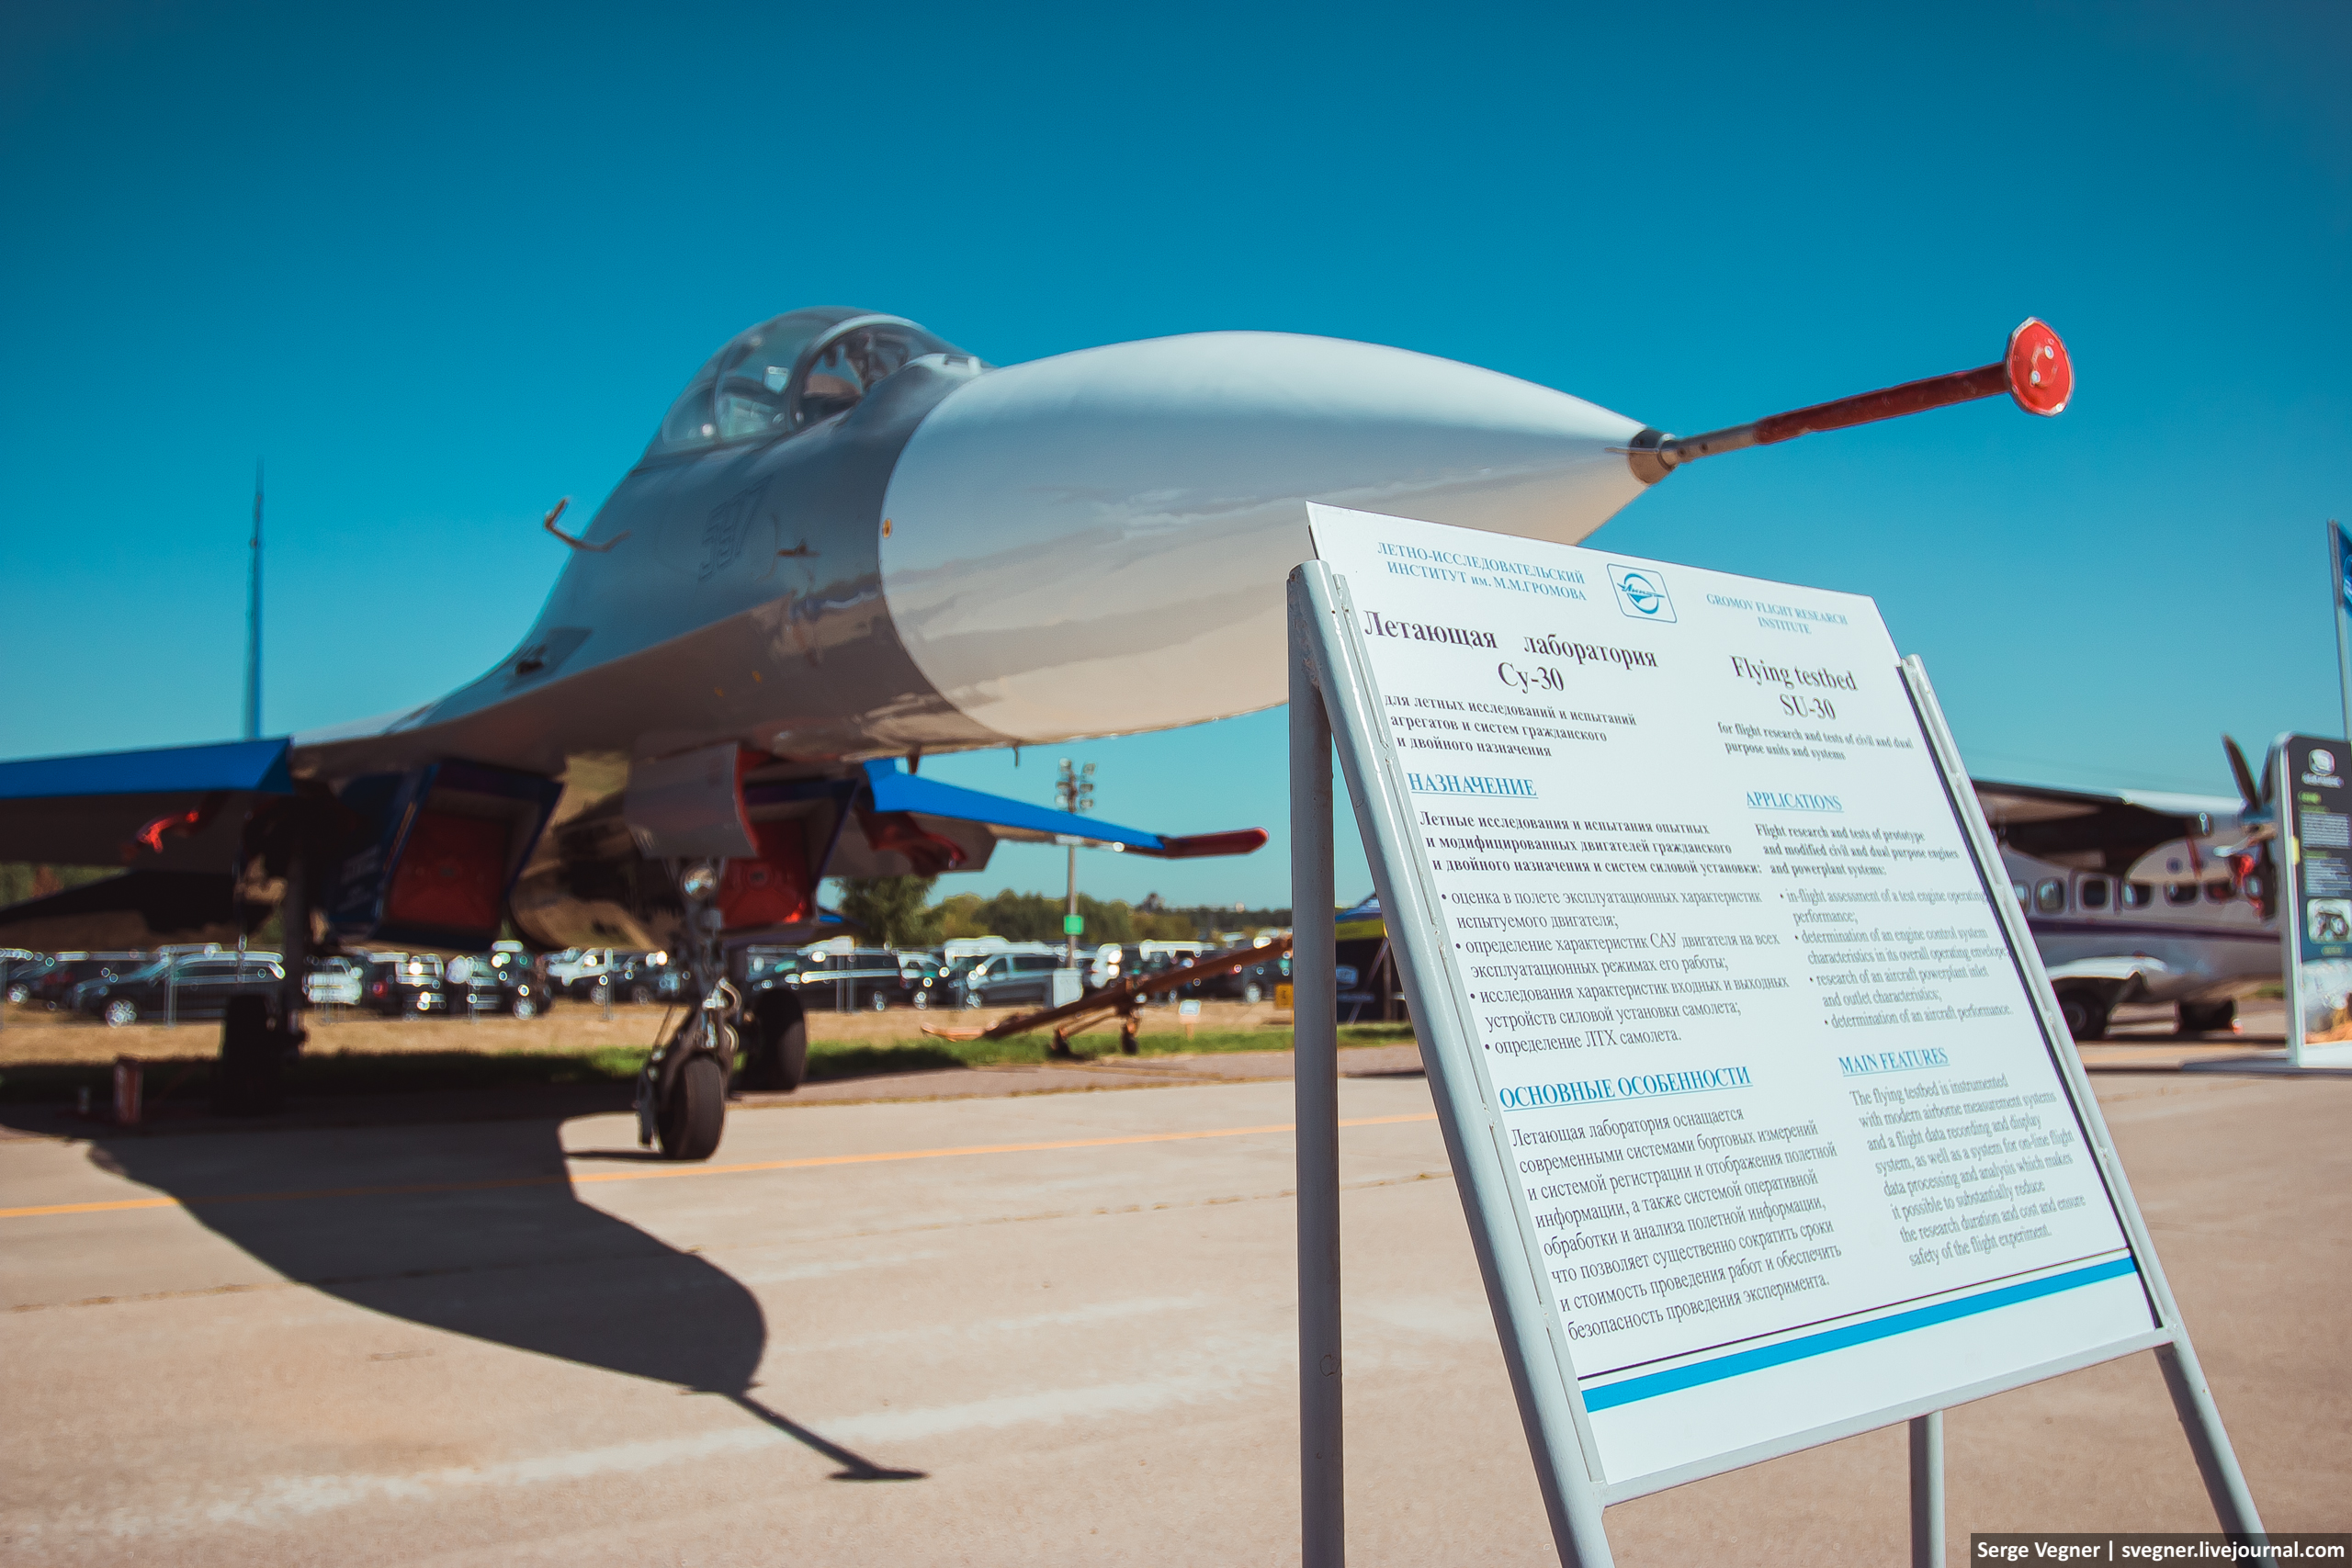 MAKS-2015 Air Show: Photos and Discussion - Page 3 0_f5abd_5826d4bf_orig